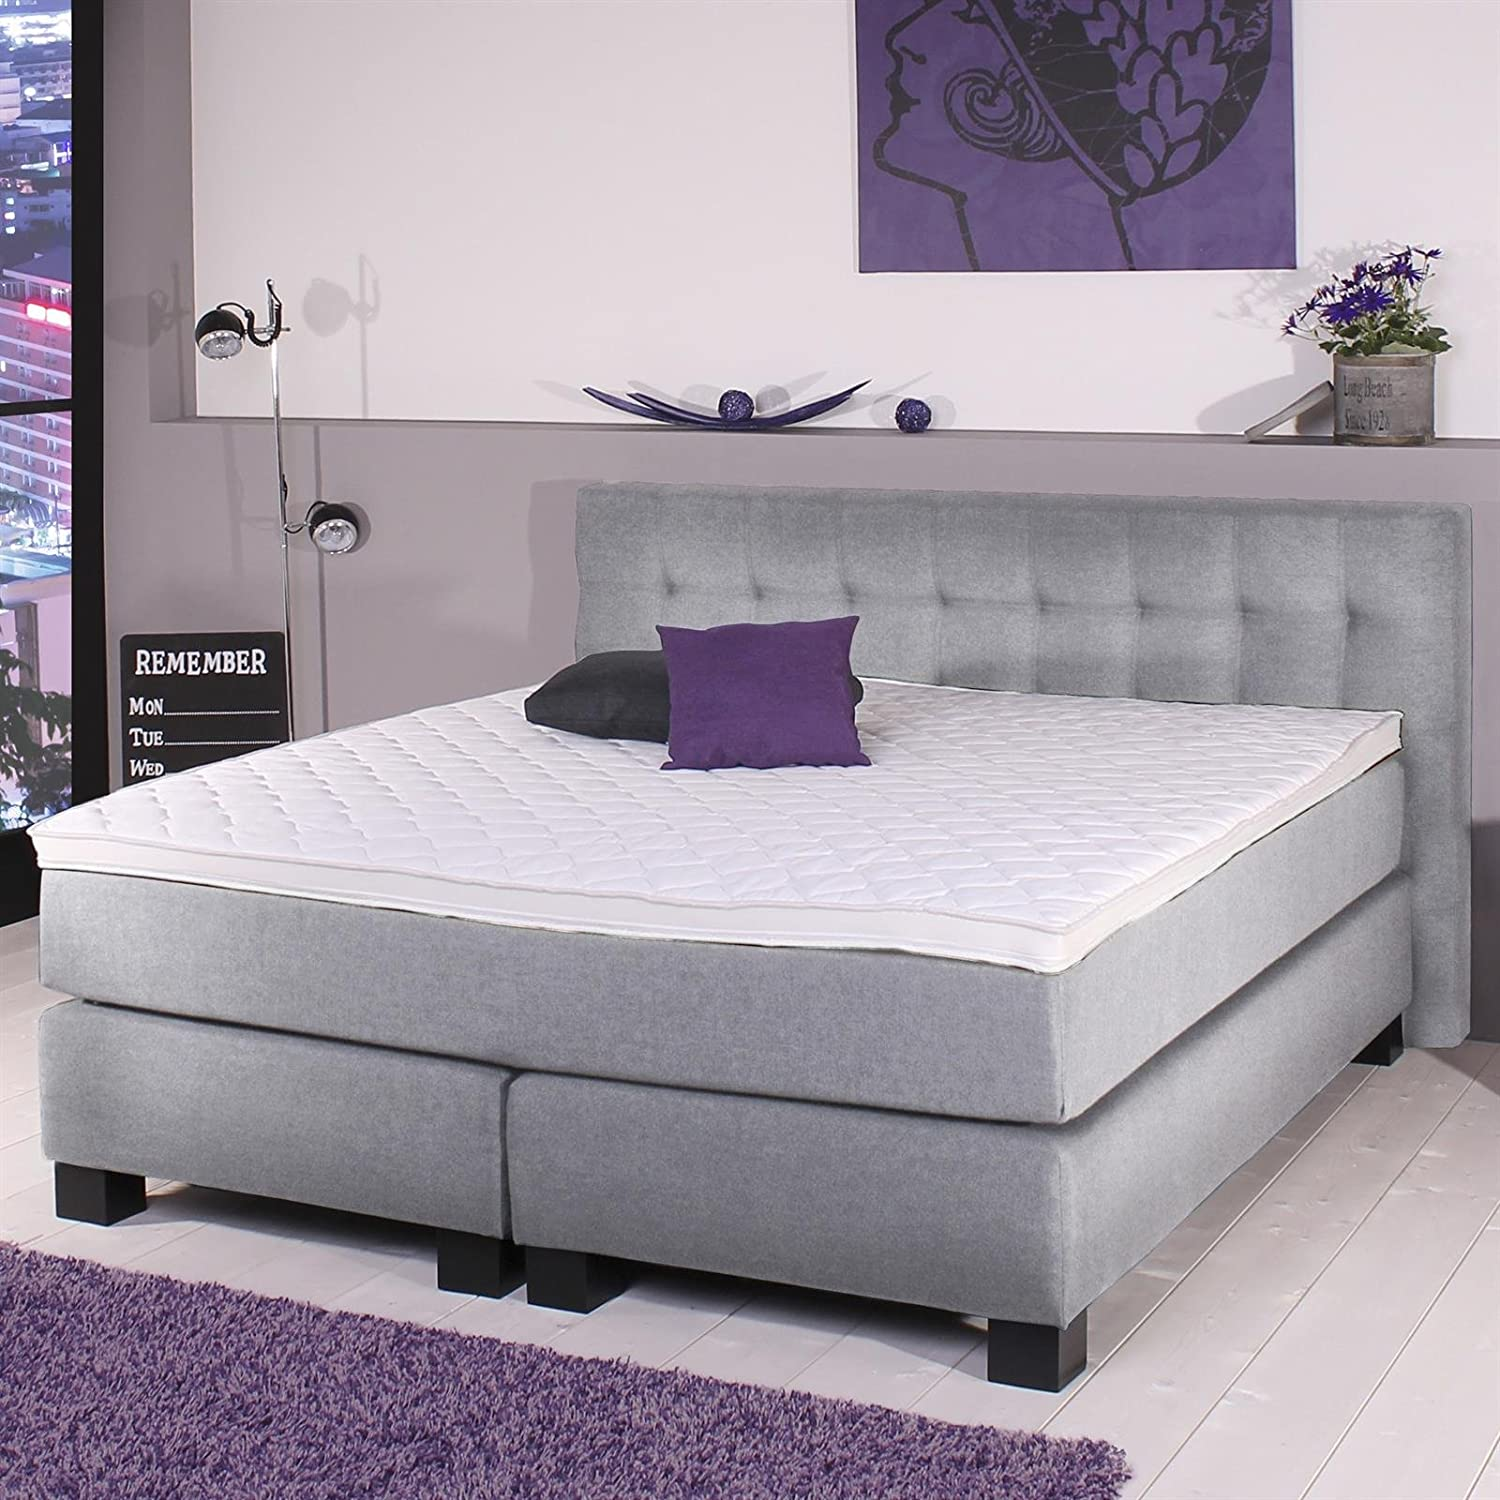 boxspringbett doppelbett hotelbett 180 x 200 cm mit. Black Bedroom Furniture Sets. Home Design Ideas